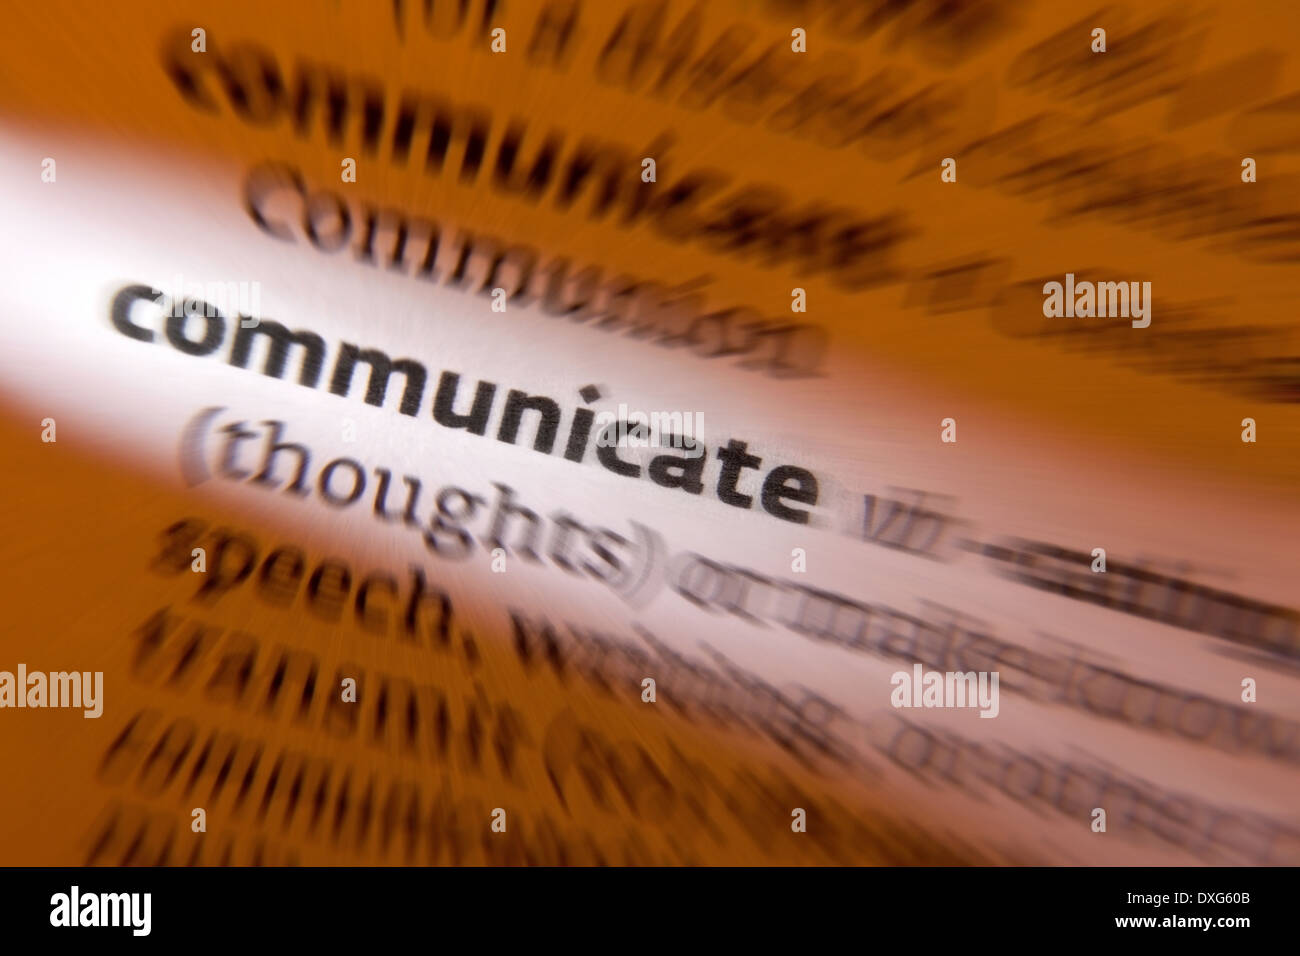 Communicate - to share or exchange information, news, or ideas. - Stock Image